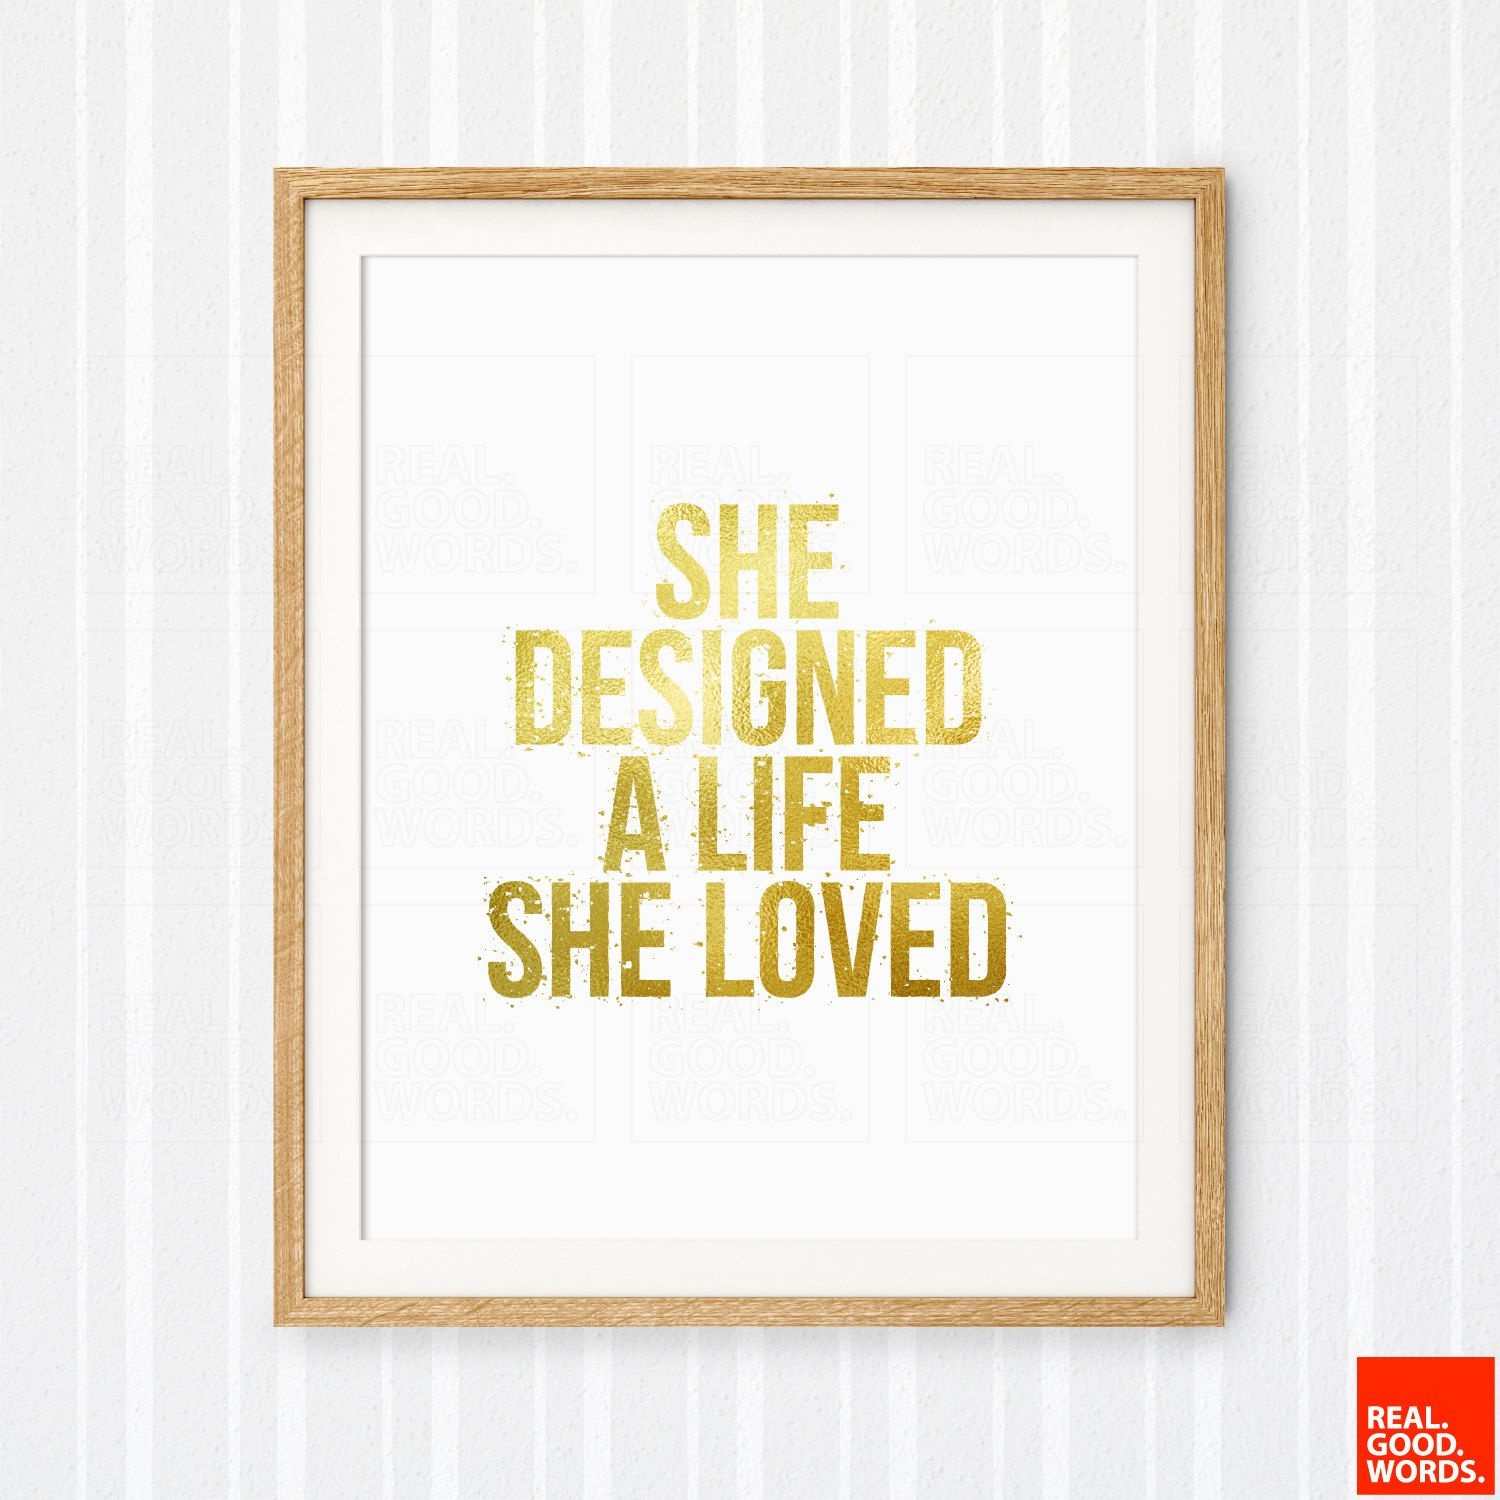 Magnificent Wall Art With Words Gift - Art & Wall Decor - hecatalog.info